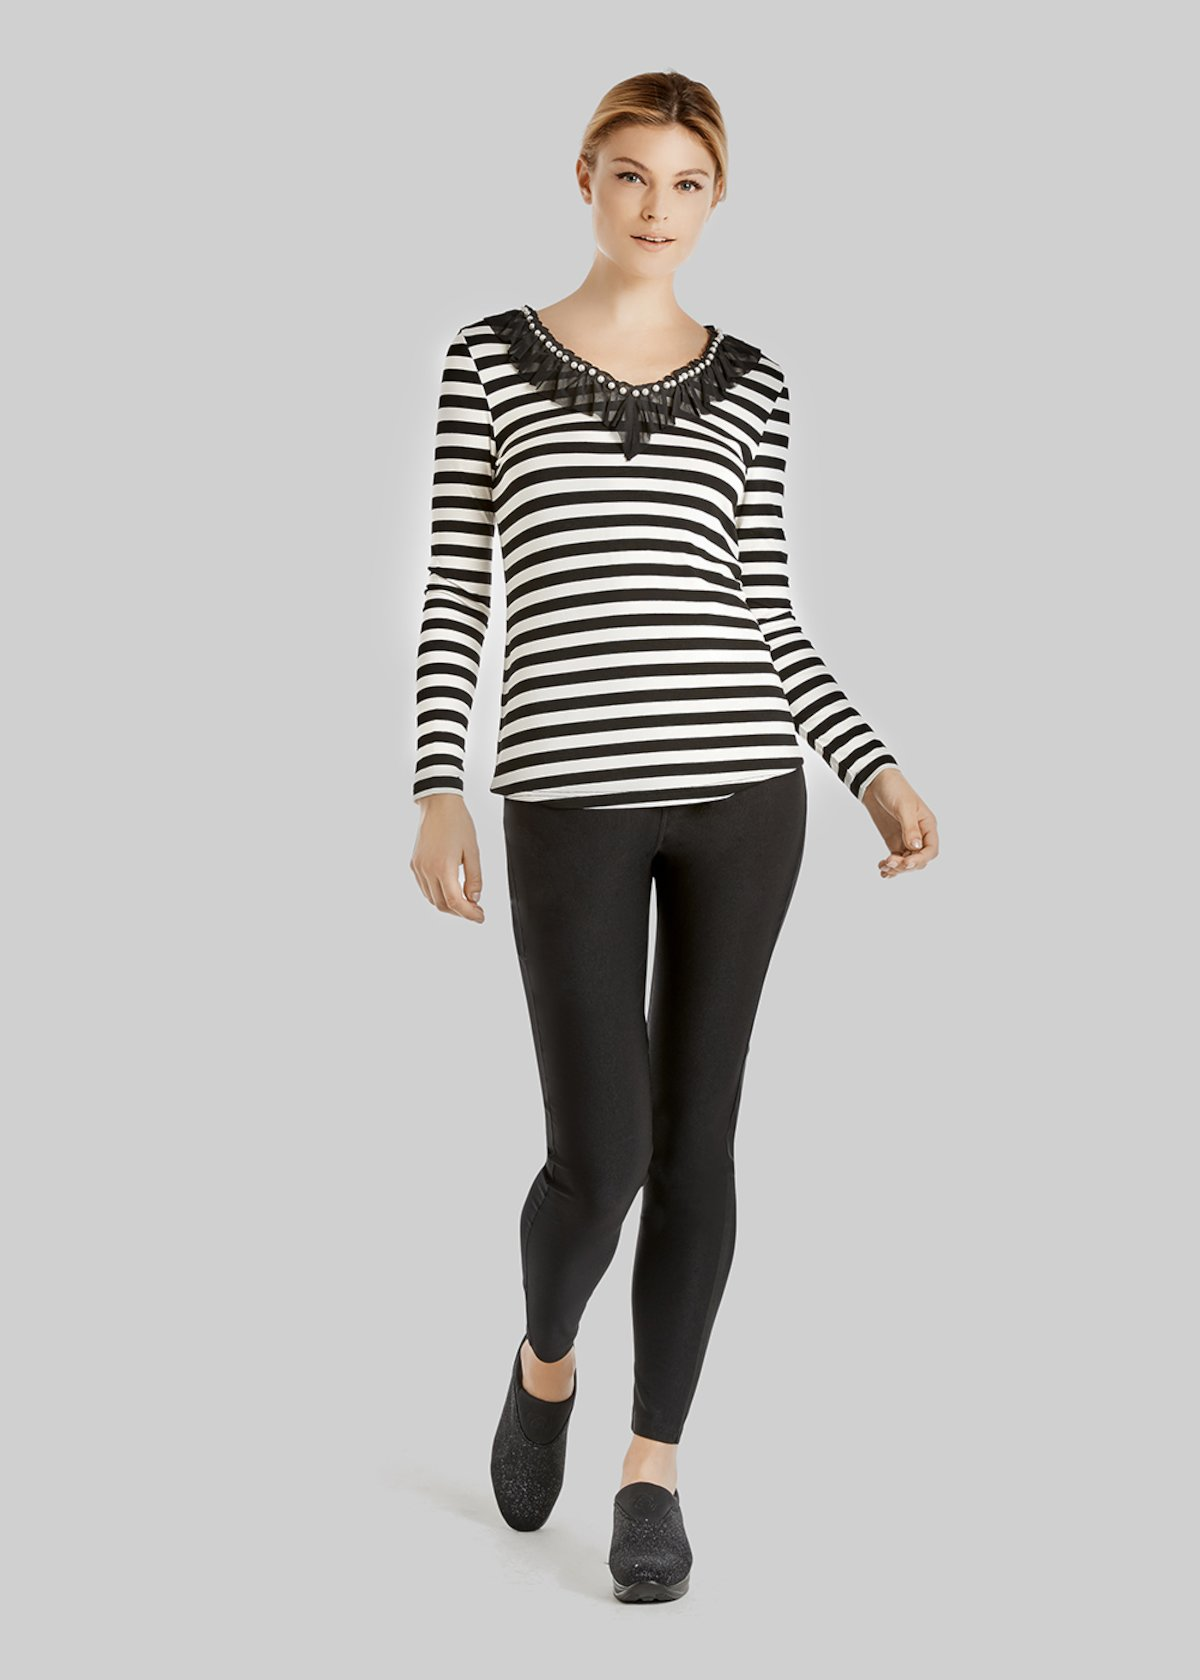 Stily fantasy stripes t-shirt with mesh and beads on the neckline - Black / White Stripes